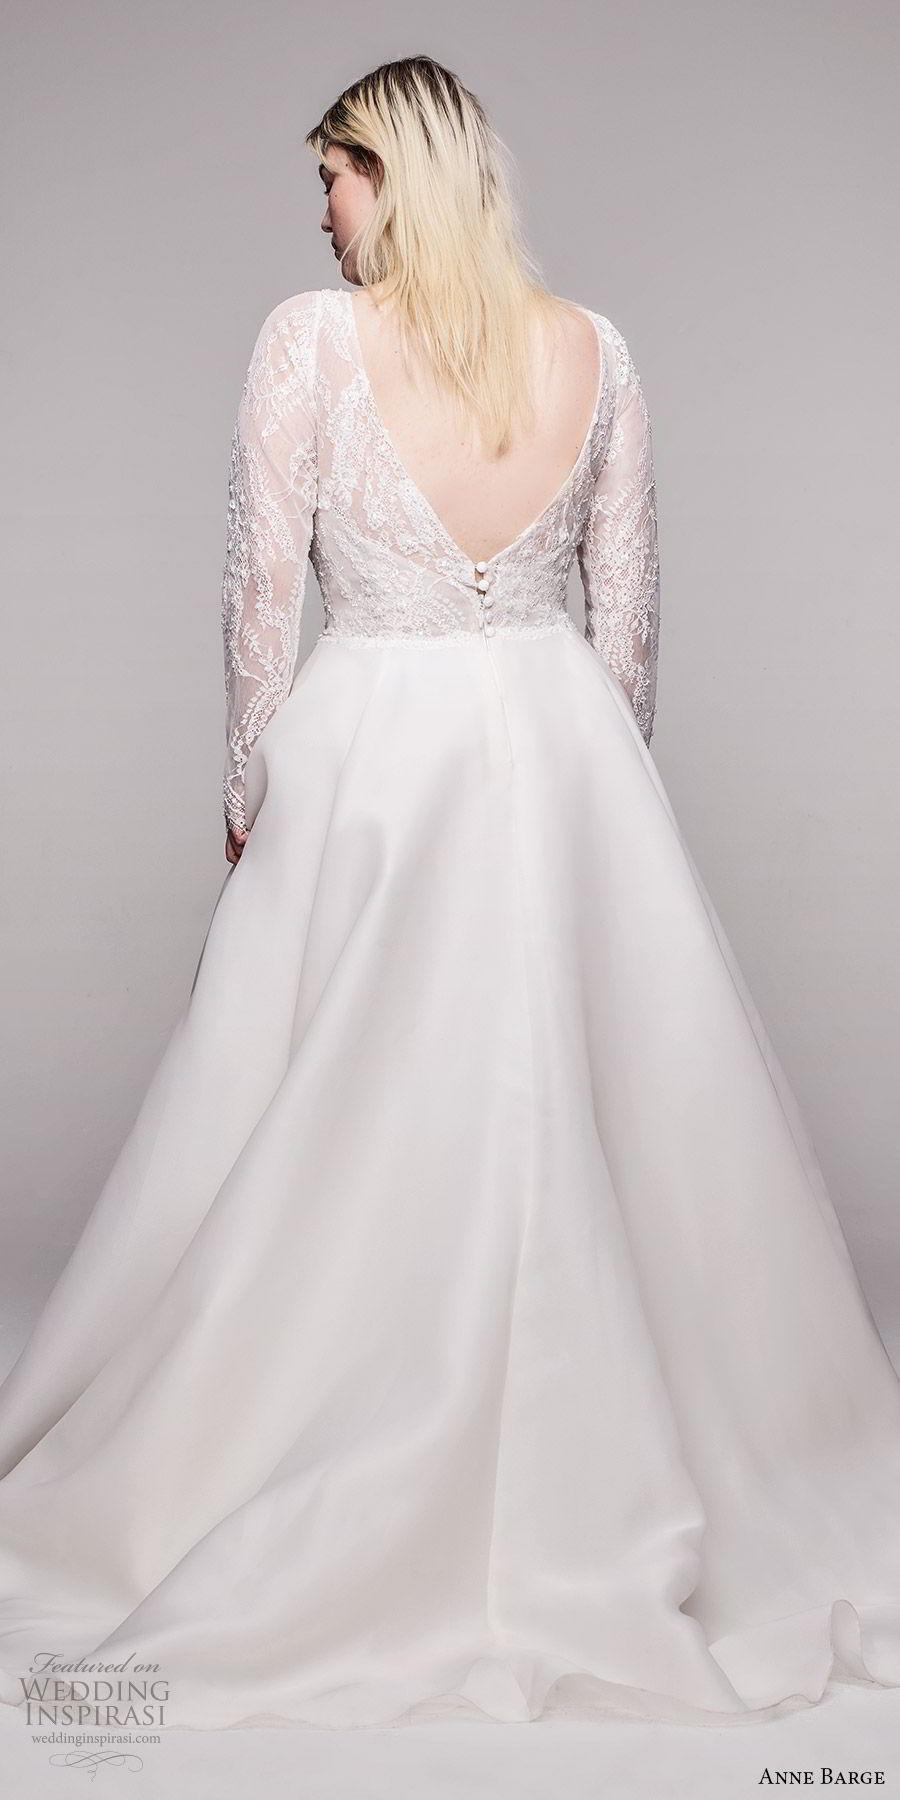 anne barge 2020 bridal plus size illusion long sleeves v neckling embellished lace bodice a line ball gown wedding dress (8) romantic elegant chapel train bv